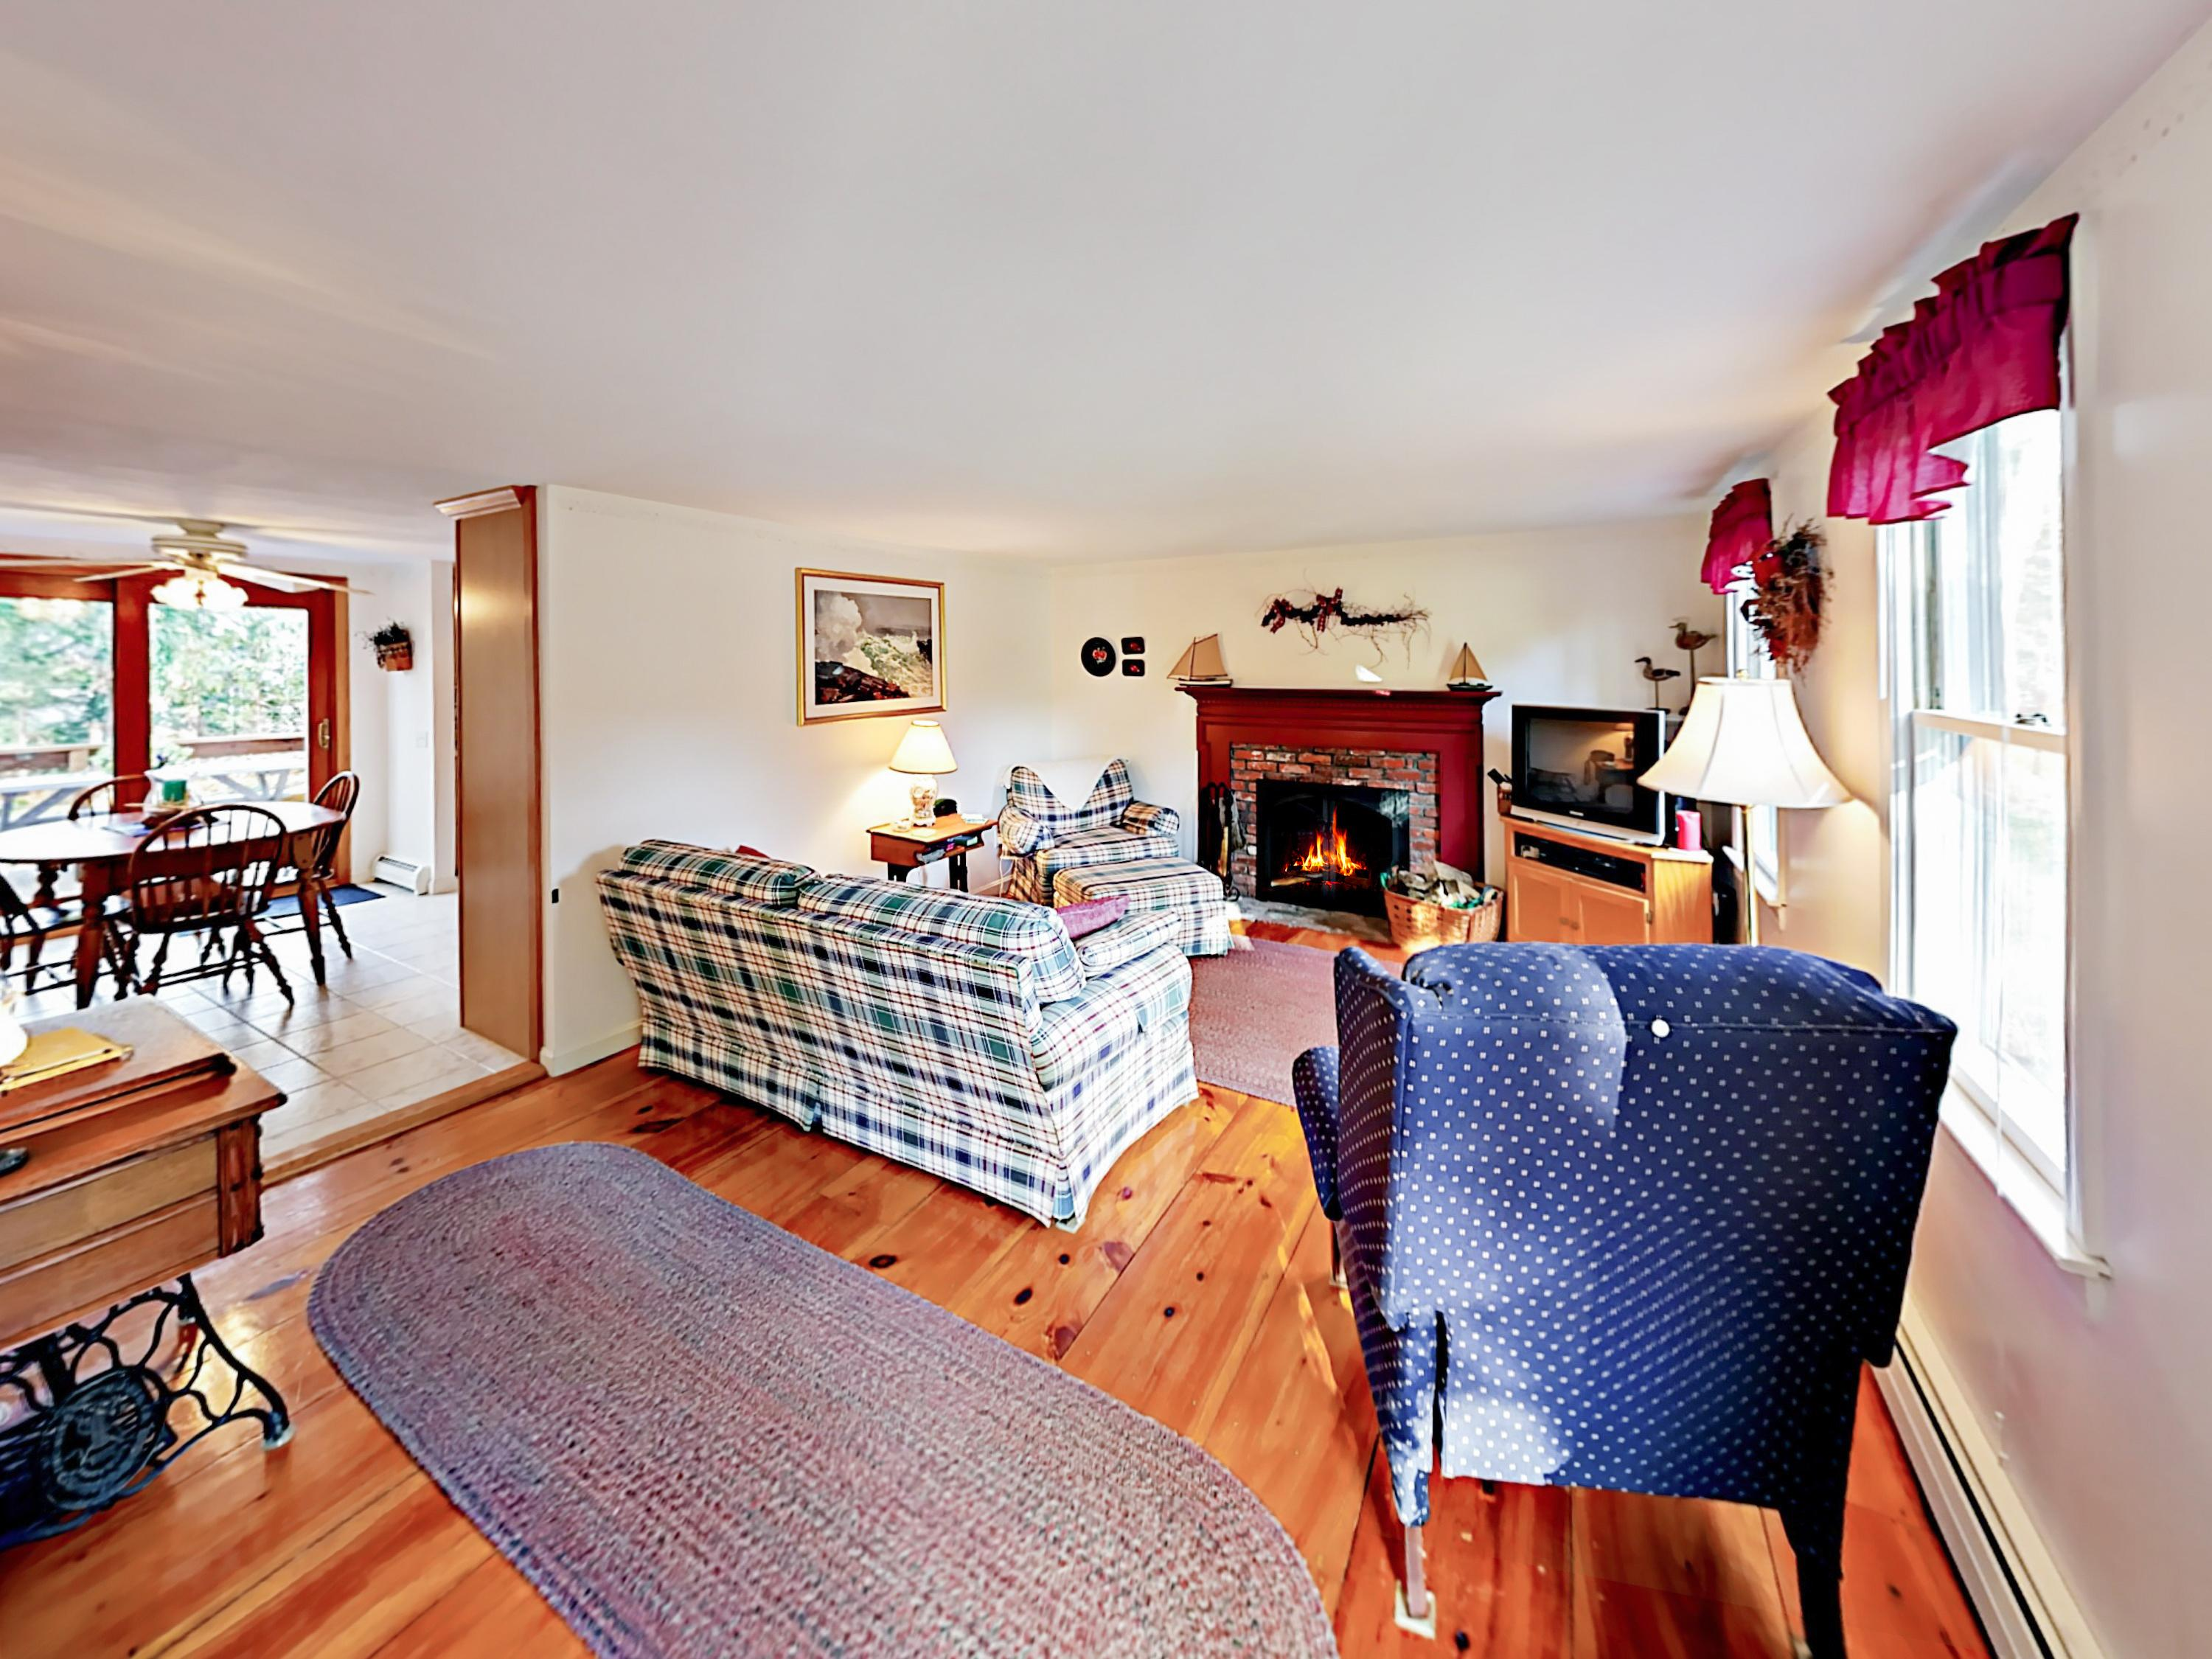 Boasting classic Cape Cod style and a prime location just 200 steps from Long Pond, this cottage offers the perfect home base for your vacation.